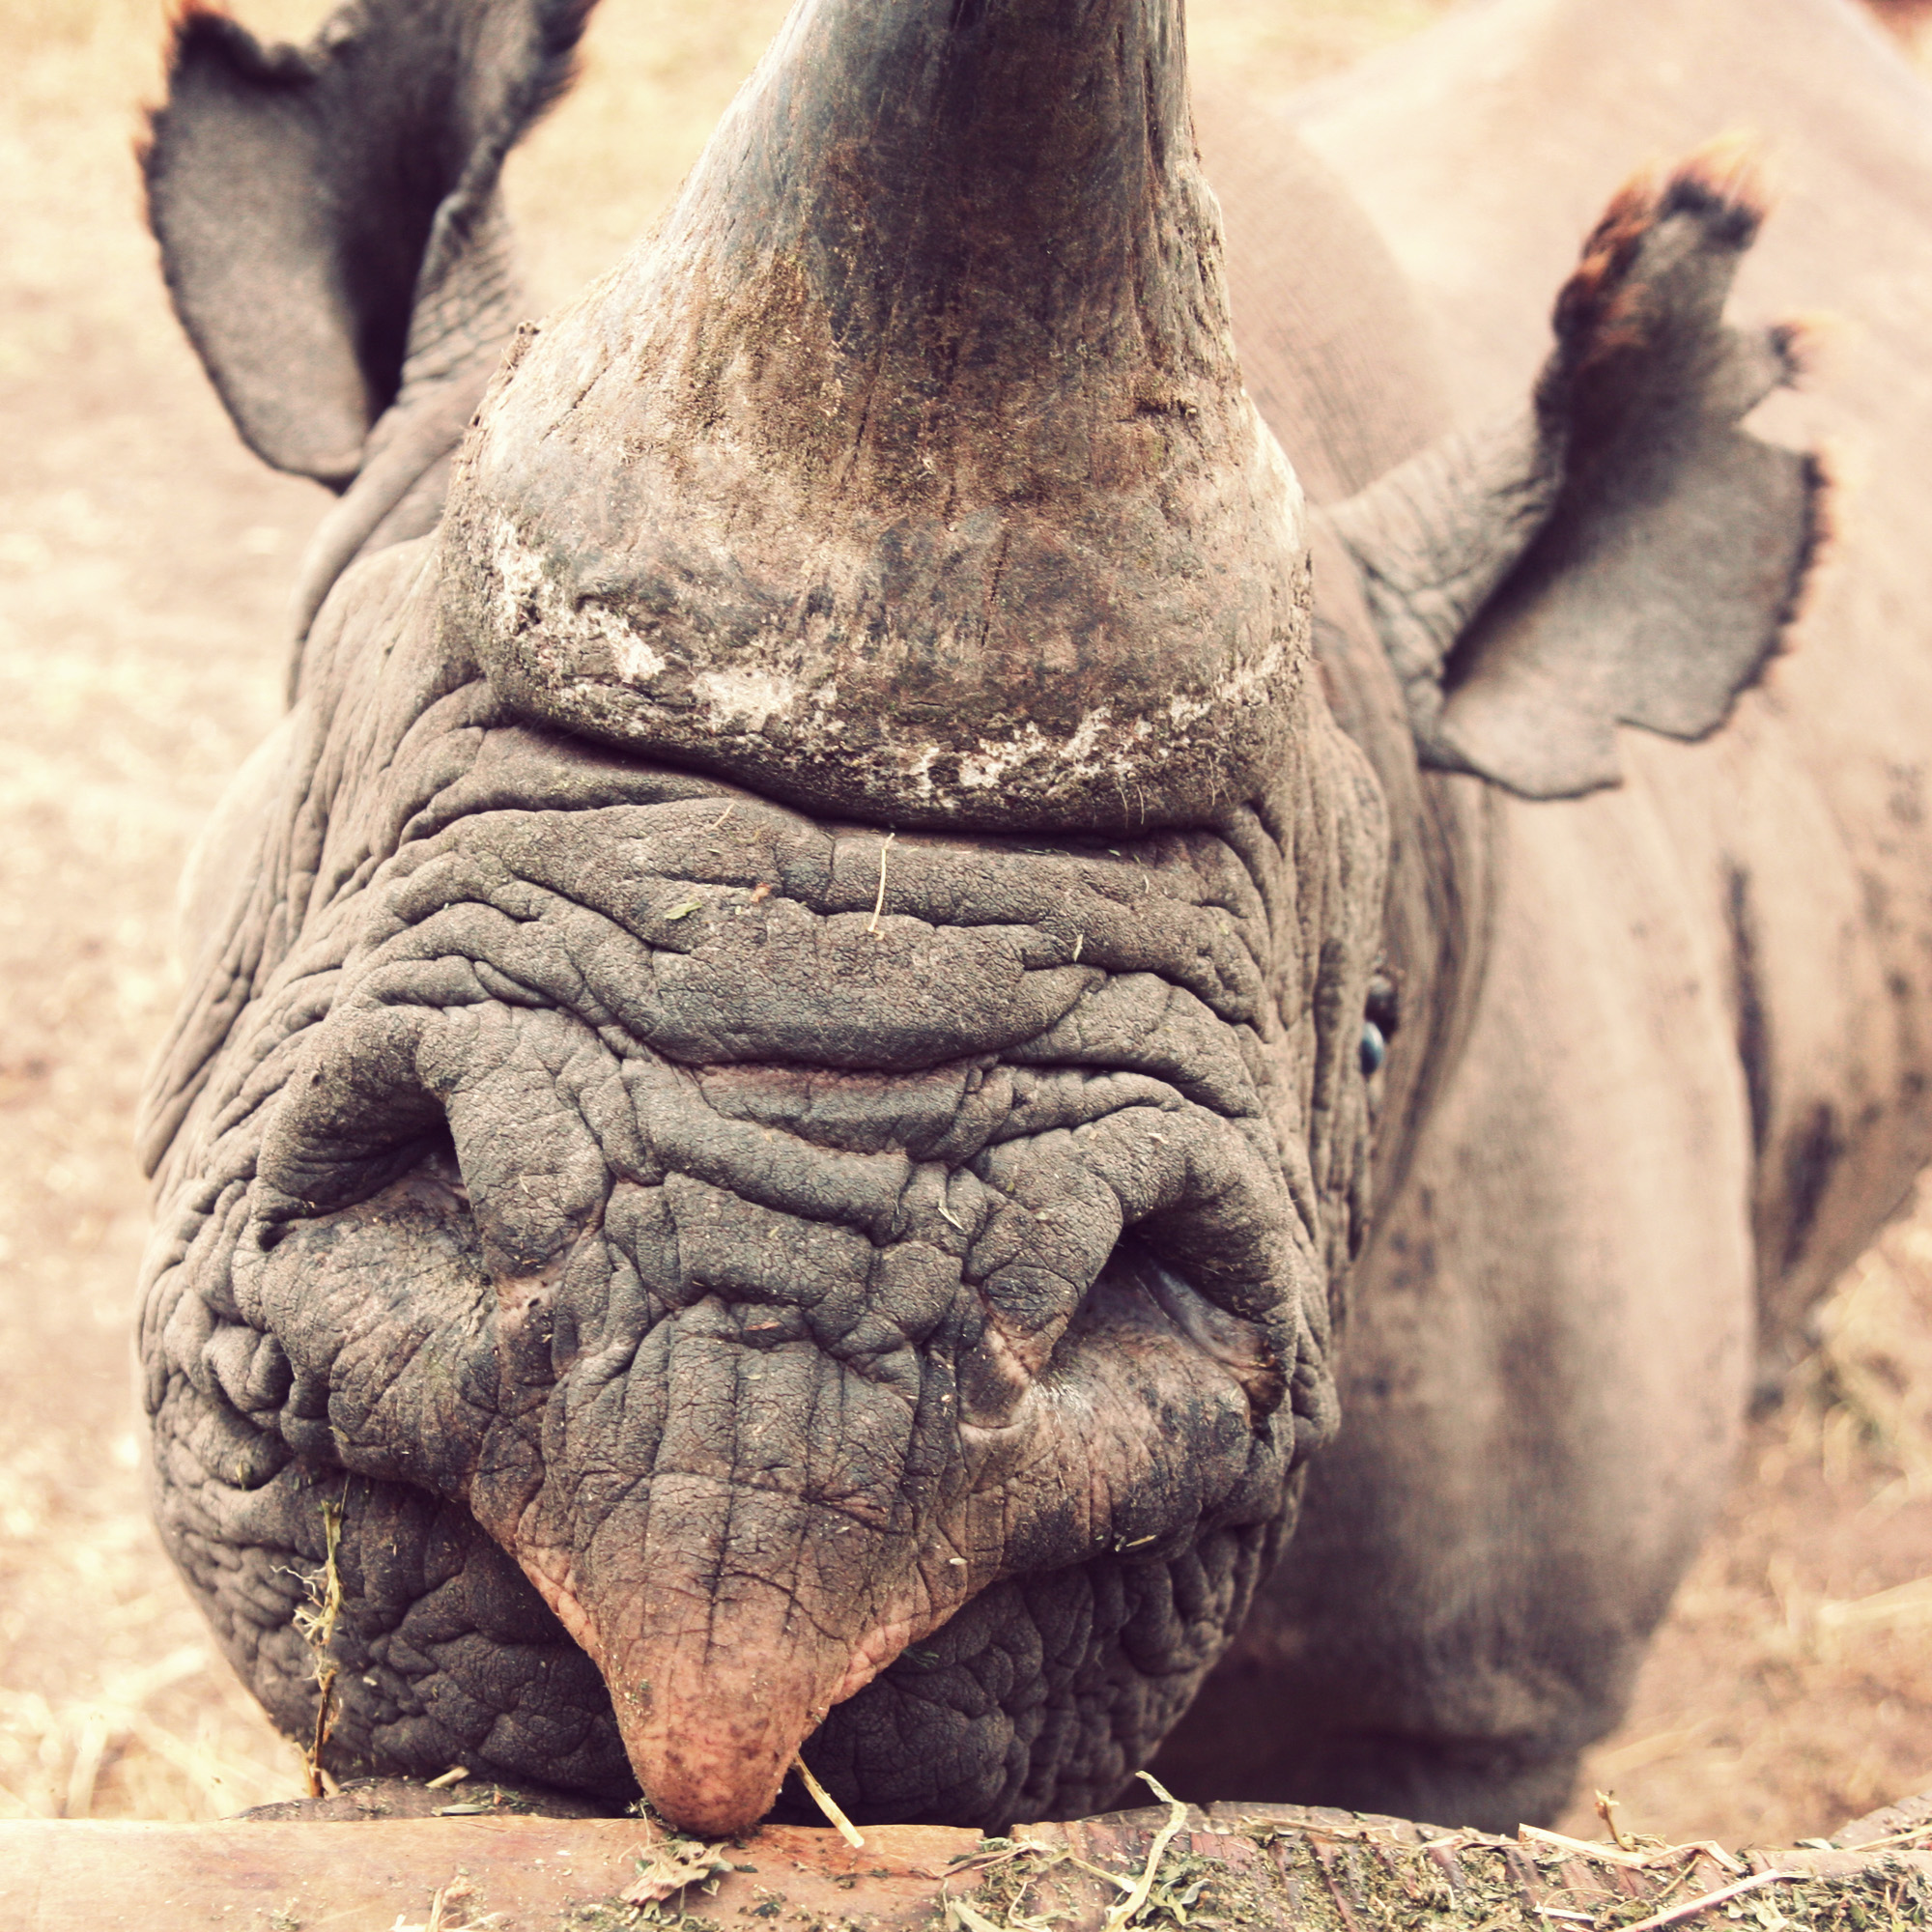 Note his pointed lip - he's a black rhino.